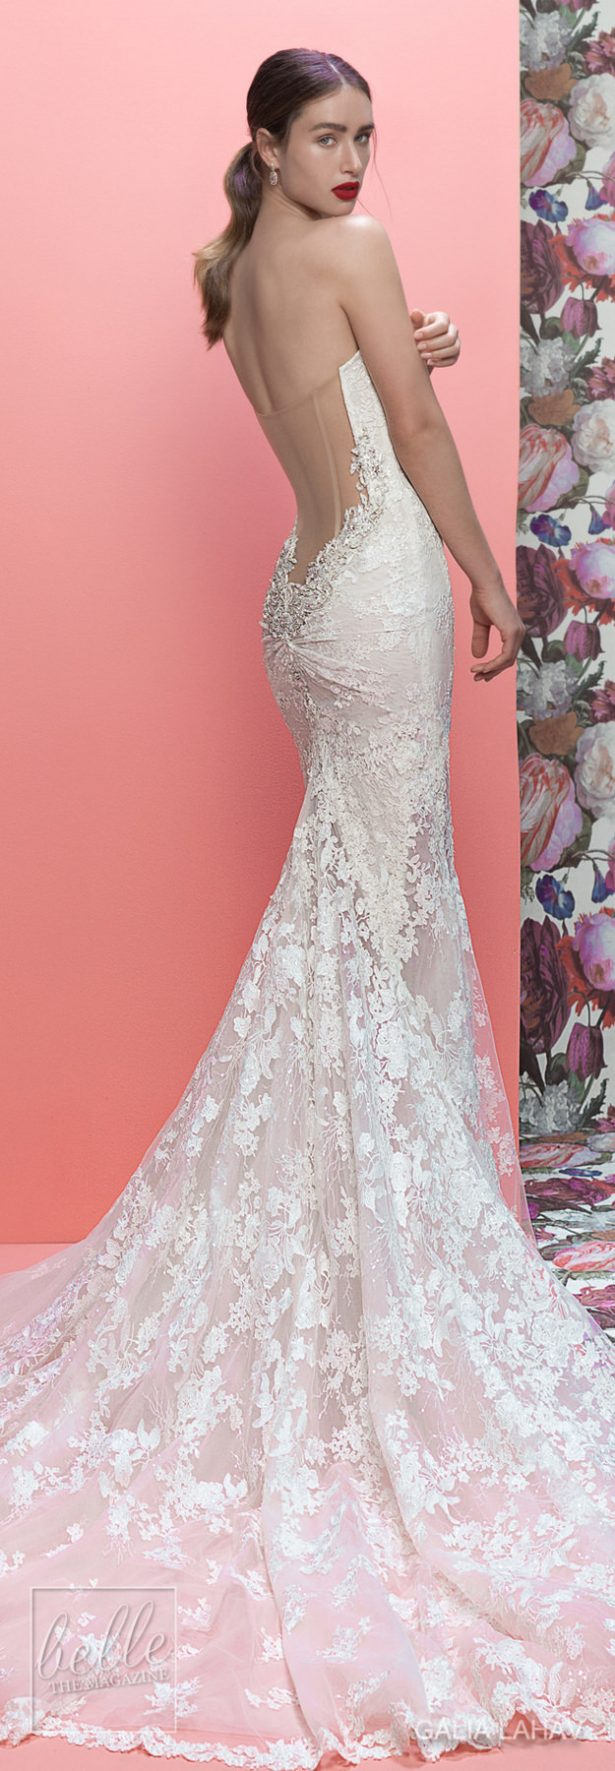 Wedding Dresses By Galia Lahav Couture Bridal Spring 2019 Collection- Queen of Hearts - Lorraine